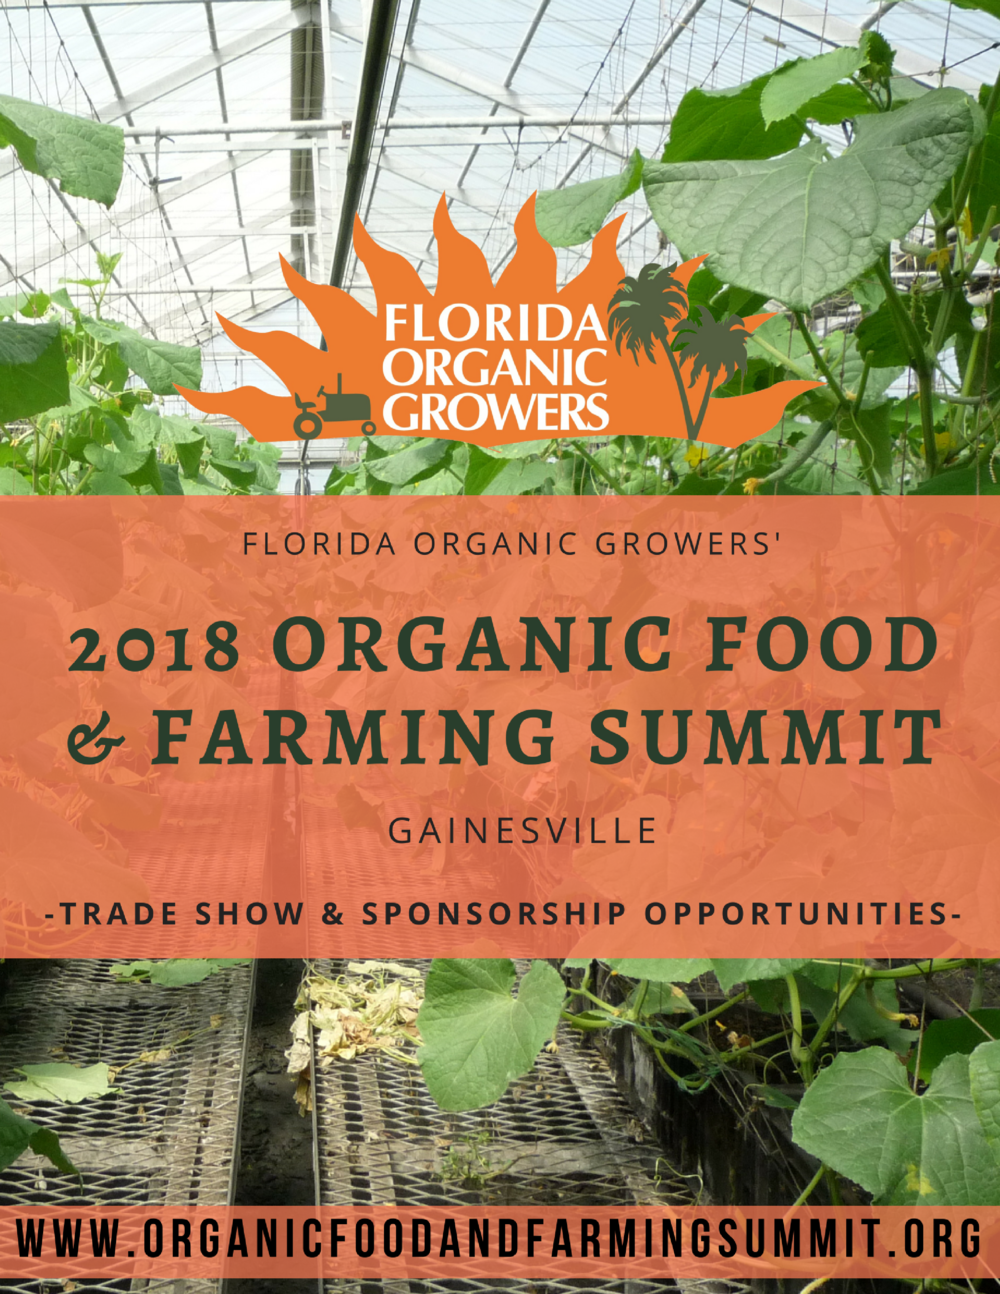 In 2017, the inaugural Organic Food & Farming Summit saw over 200 participants. Our post-Summit surveys revealed that 90% of these participants intend to attend the 2018 Summit and based on the success of last year's event, we expect to double attendance this year!   By becoming a 2018 sponsor, your company or organization has the chance to reach hundreds of potential clients during the Summit and thousands prior to and following the event.  - Check out our sponsorship package to the left or submit your sponsorship now by clicking on the button above